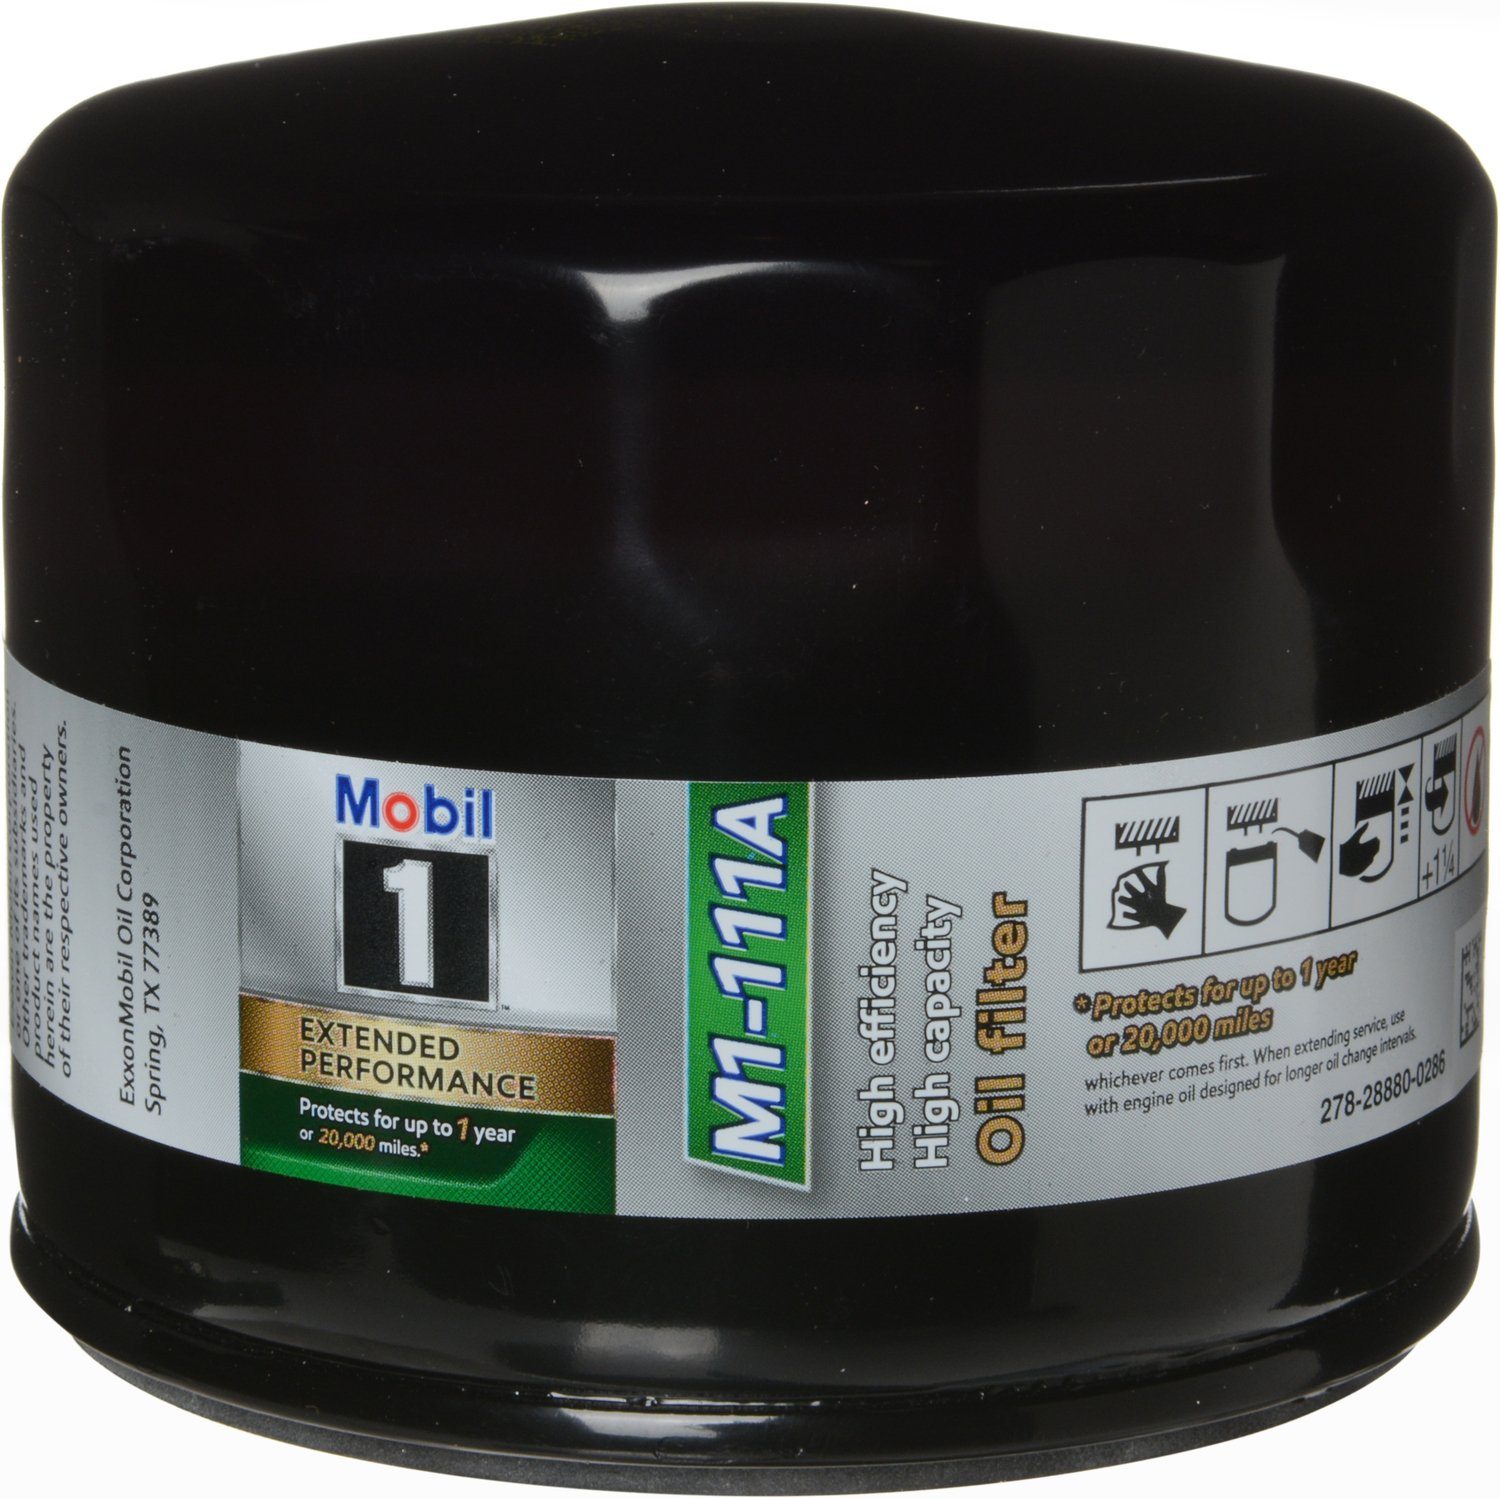 Mobil 1 M1-111A Extended Performance Oil Filter 2 Pack,